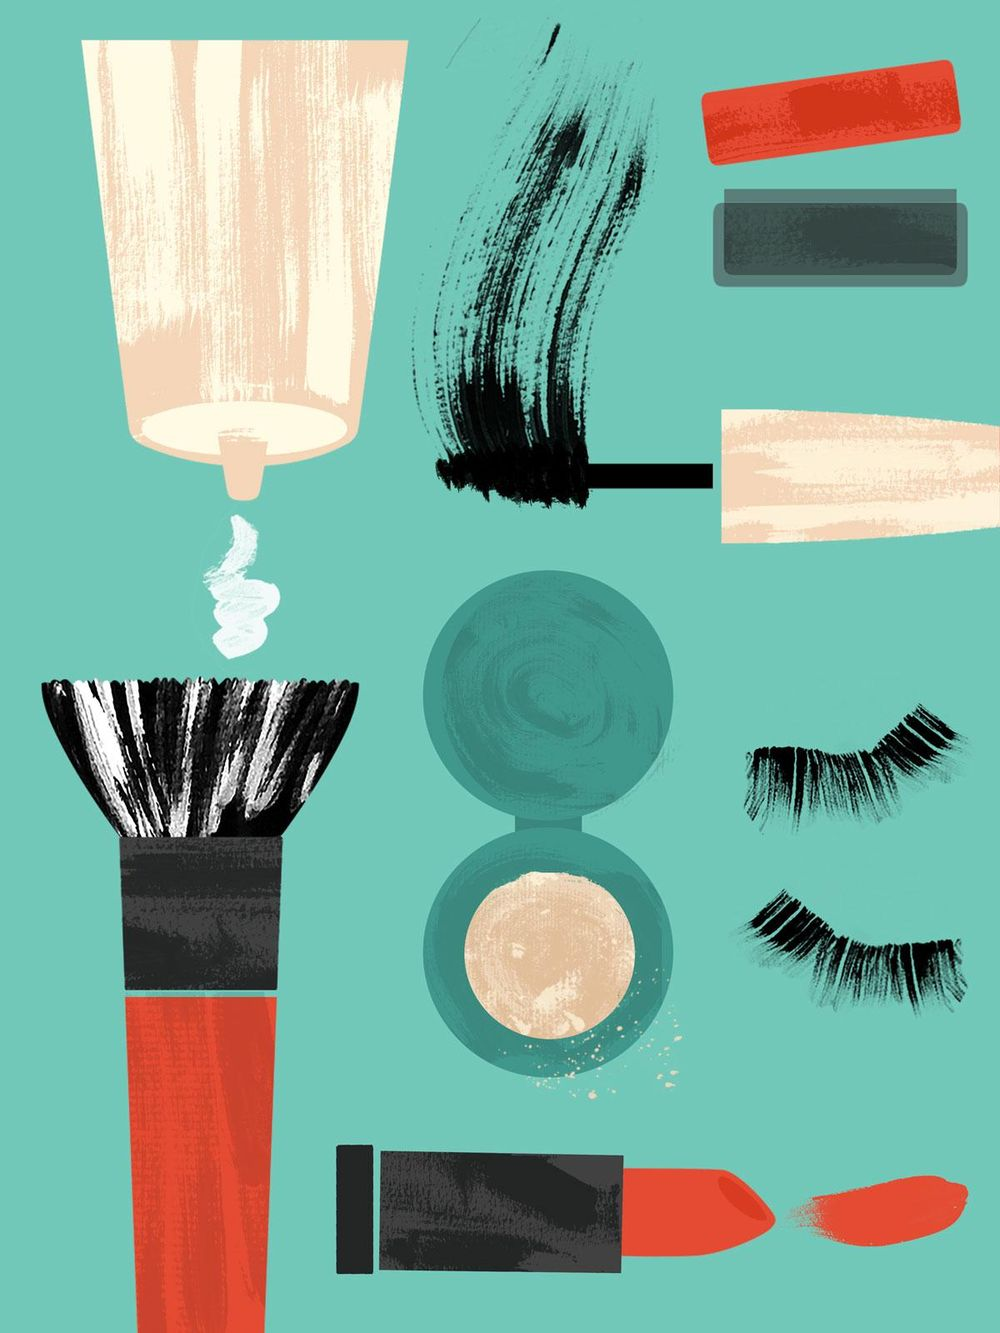 Tools of a Beauty Addict - image 4 - student project